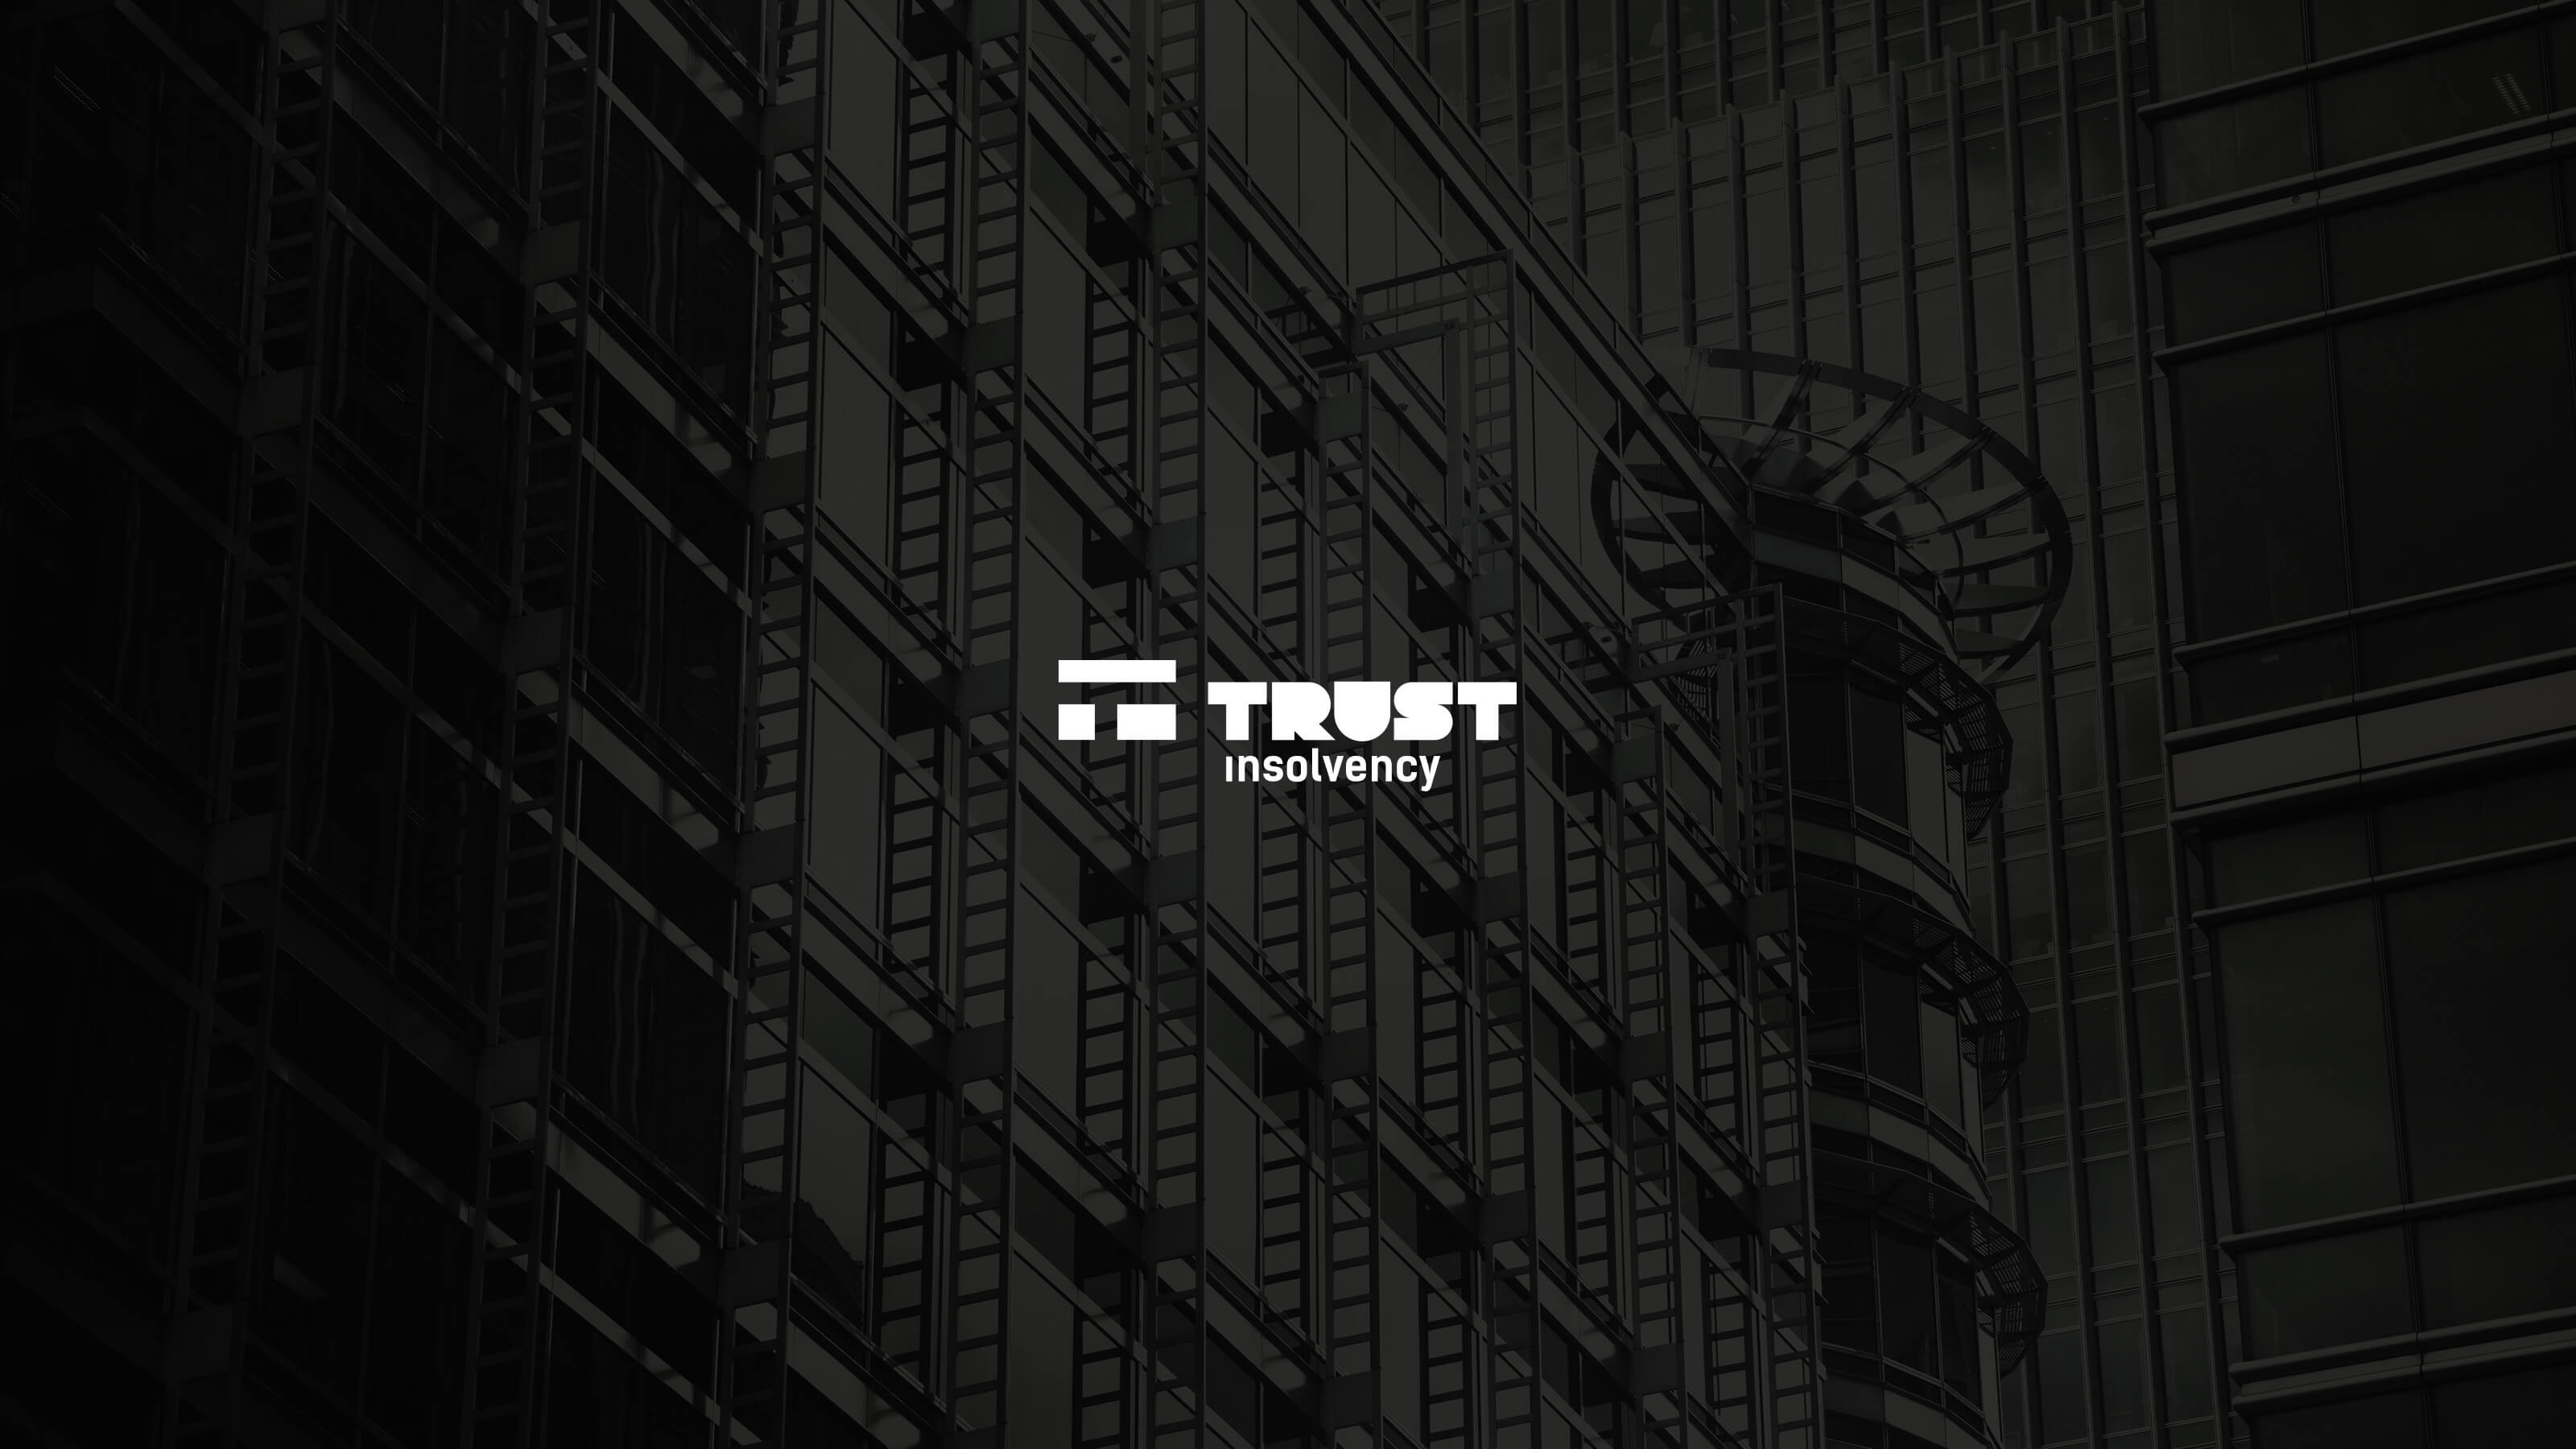 Trust-Insolvency-Presentation-HD-by-Kraftmark